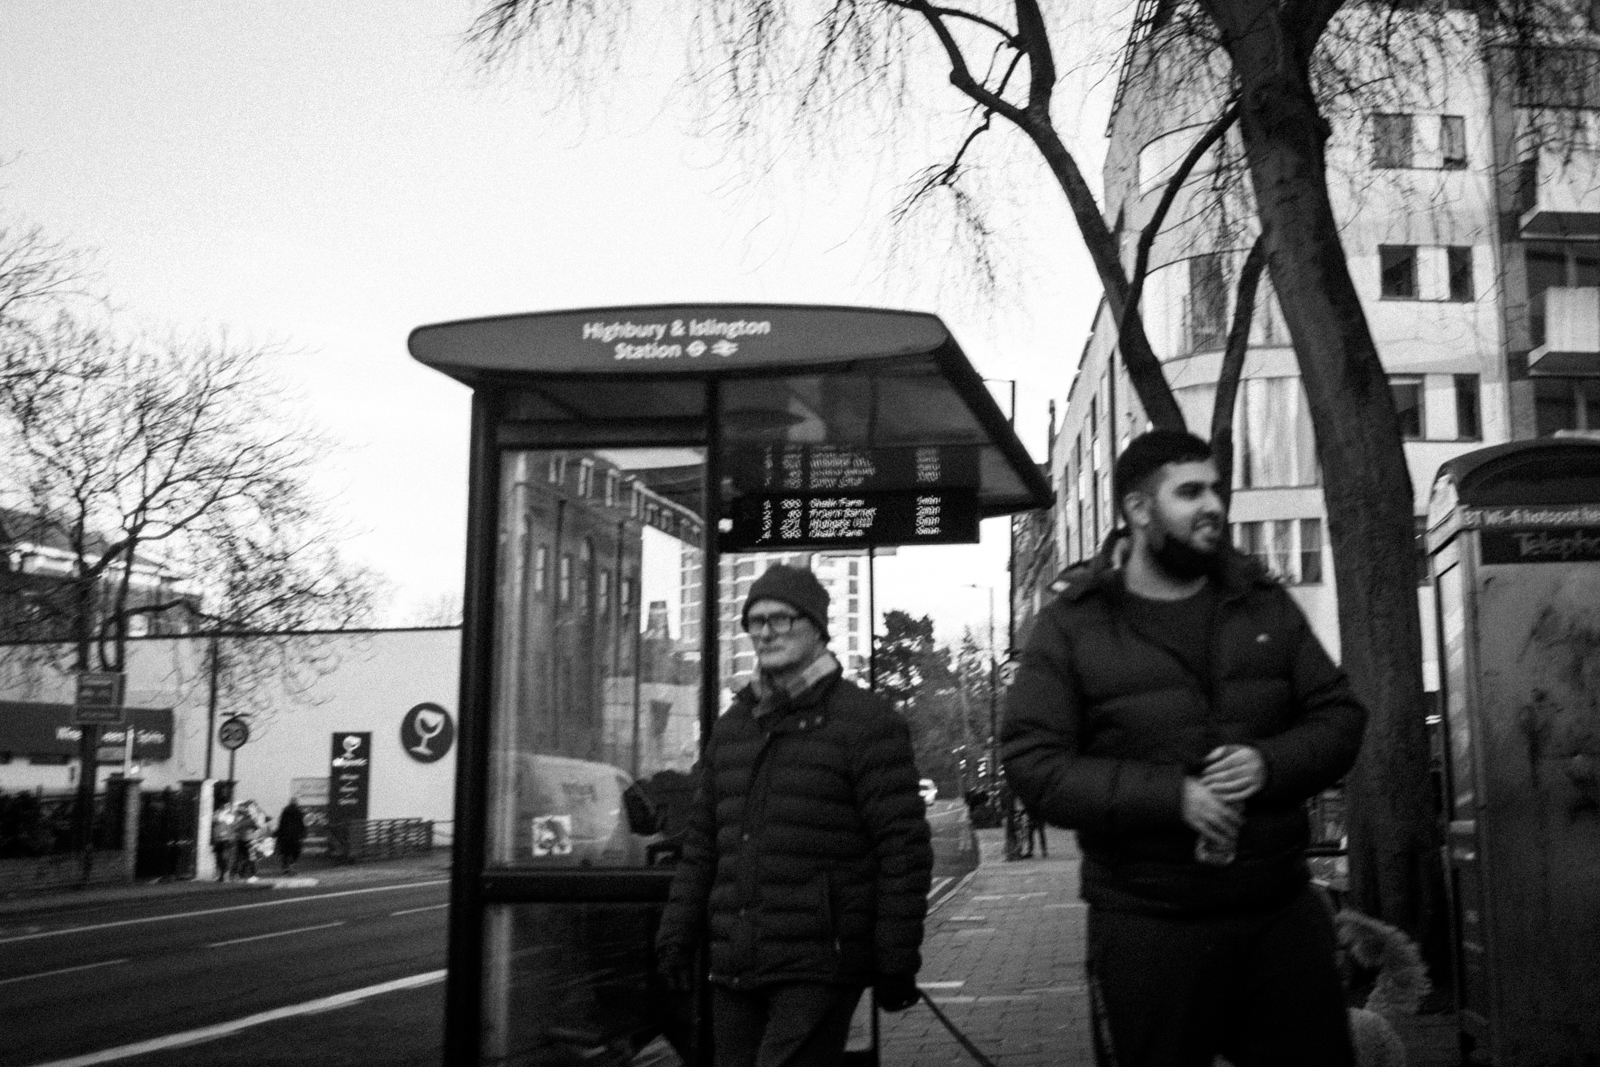 Two men at the bus stop